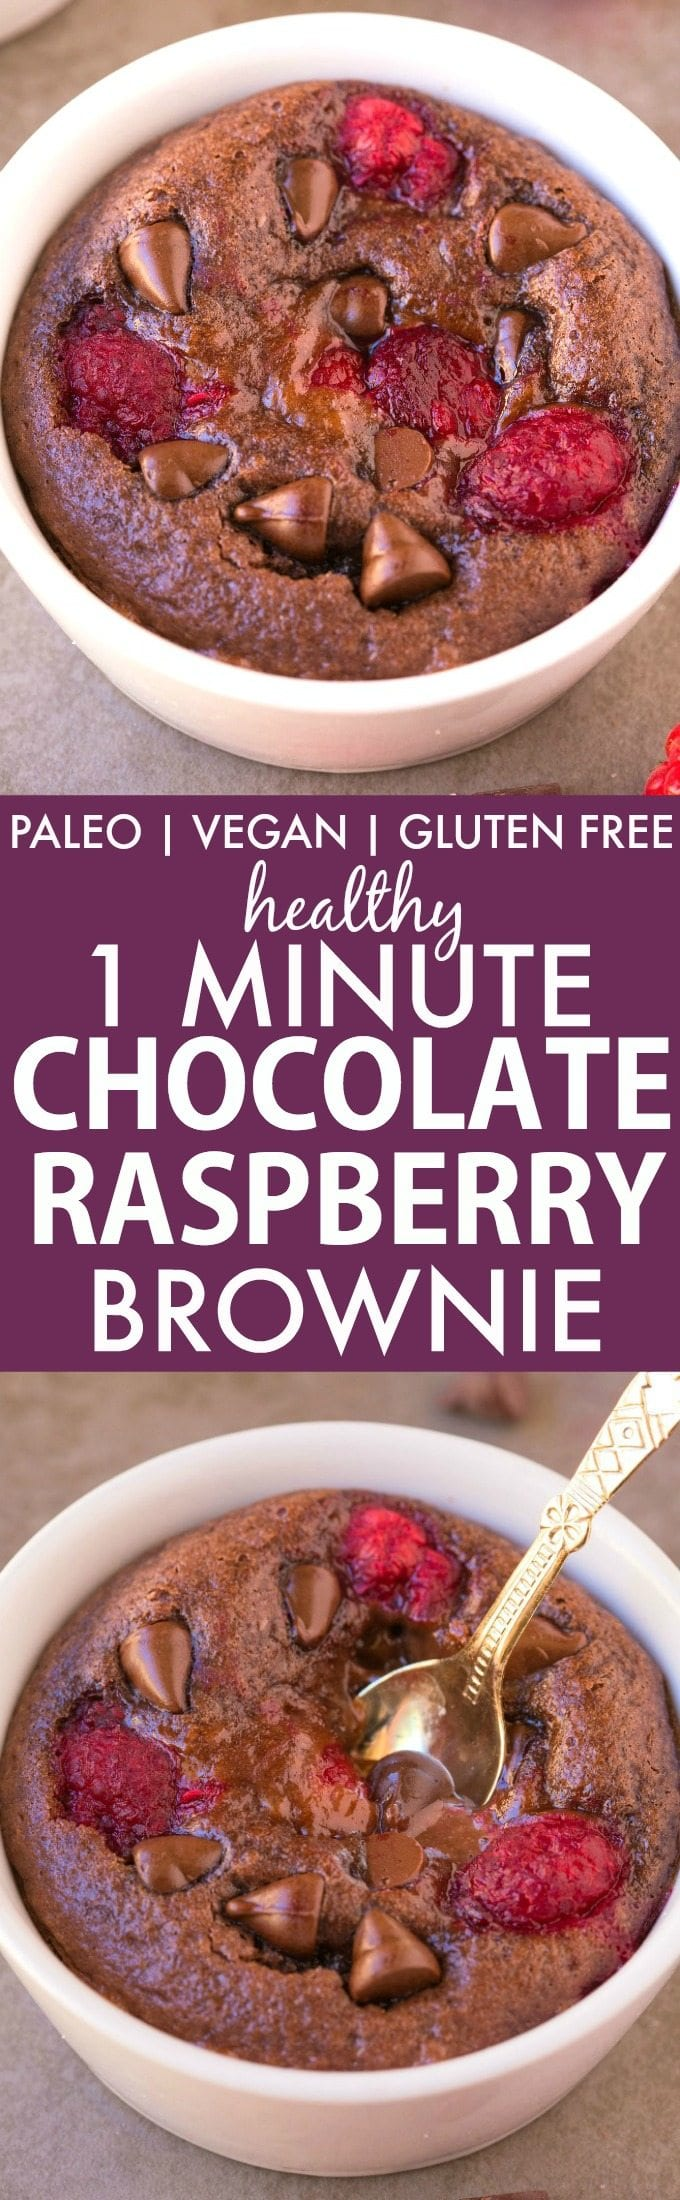 Healthy 1 Minute Chocolate Raspberry Brownie (Paleo, V, GF, Low Carb)- Moist, gooey, quick and easy dessert or snack! Flourless, grain free and single serving! Loaded with chocolate, raspberries and perfect for Valentine's day too! Oven option included! {vegan, gluten free, sugar free, paleo recipe}- thebigmansworld.com